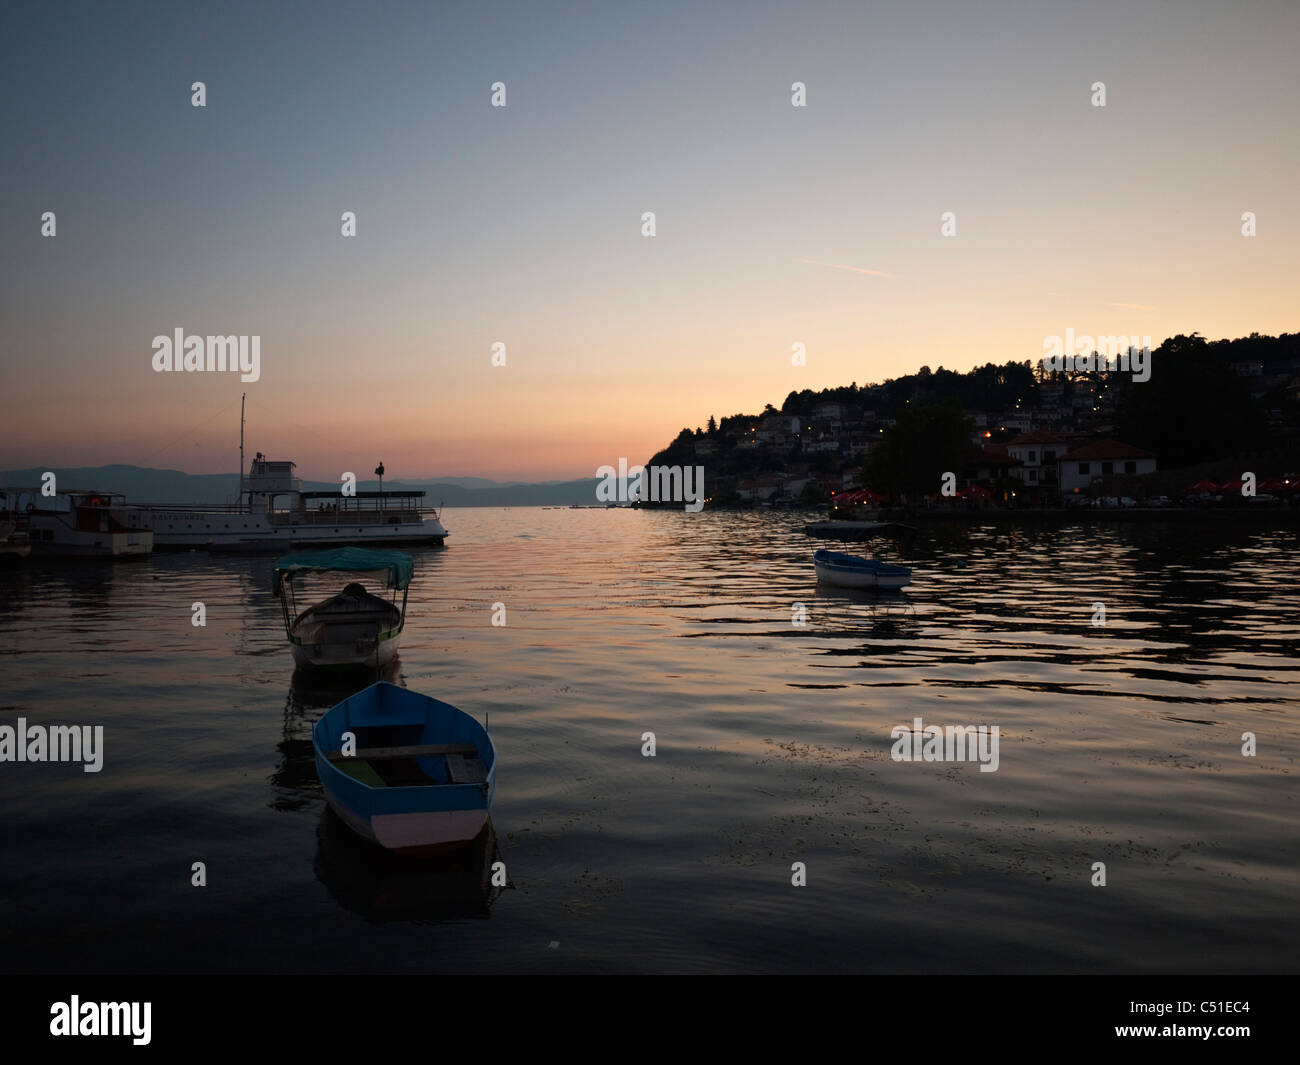 Sunset over the UNESCO heritage site of Ohrid lake and town, Macedonia - Stock Image